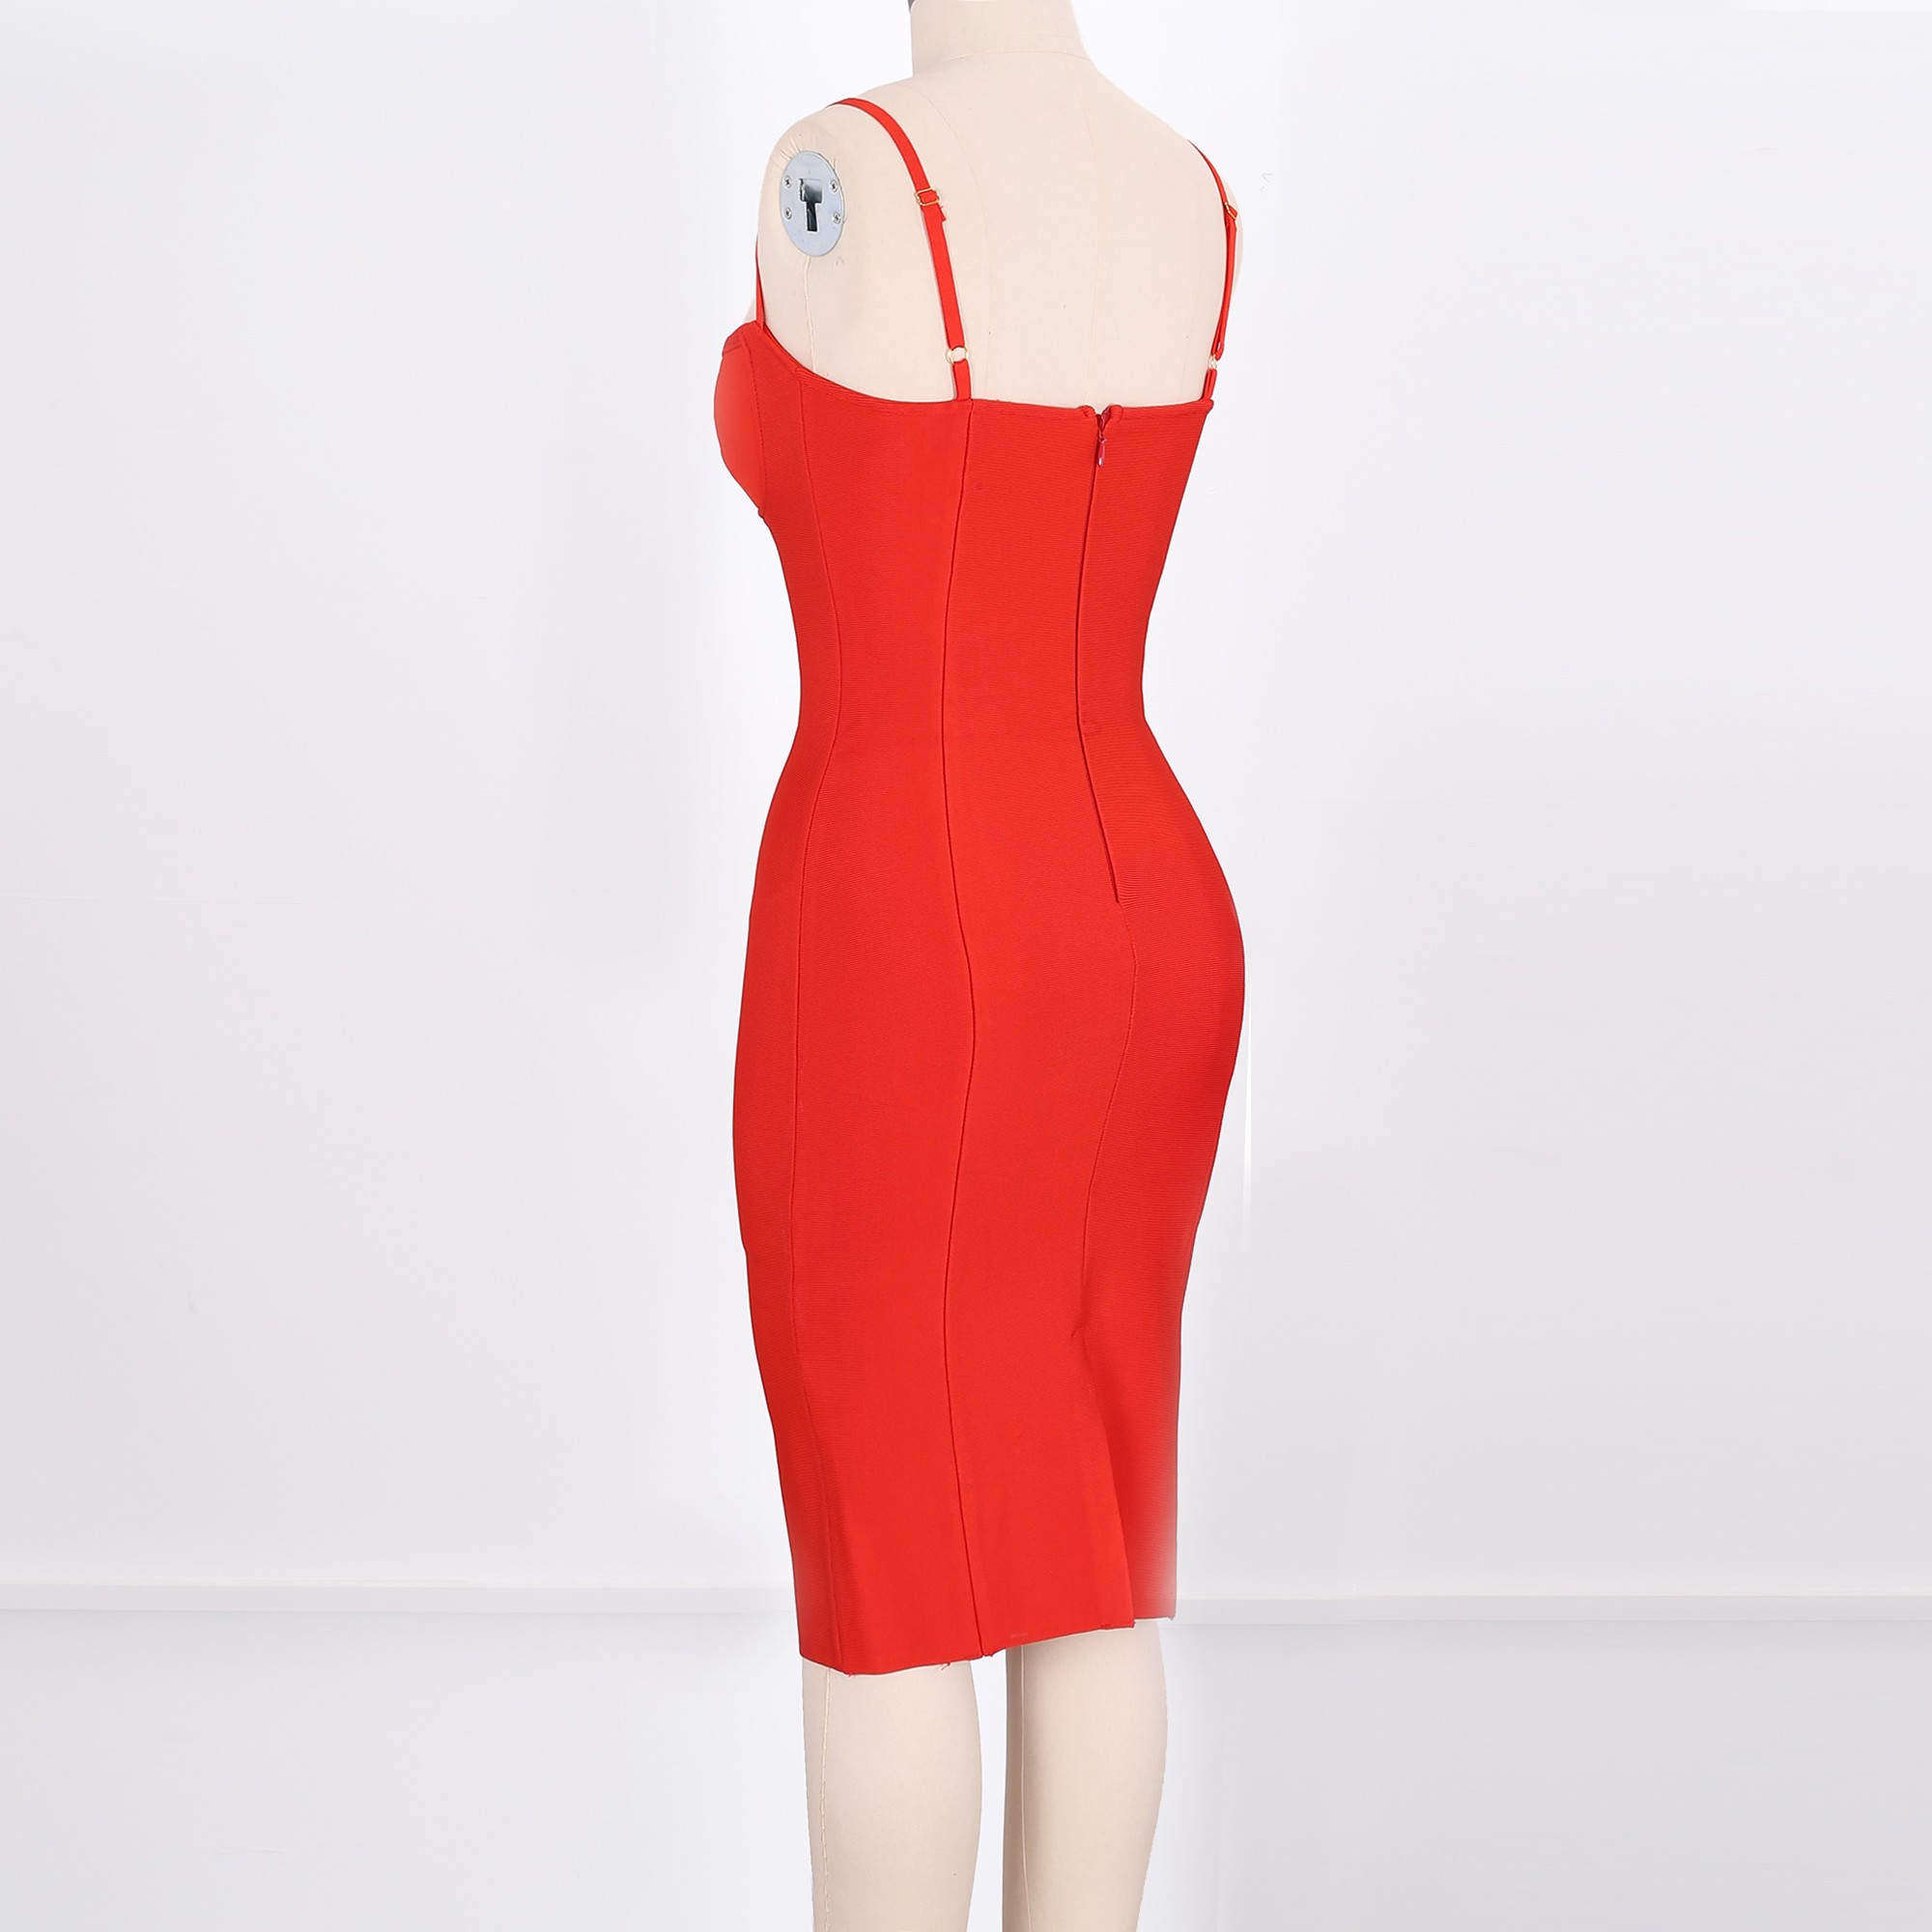 Rayon - Red Strapy Short Sleeve Mini Cut Out Evening Bandage Dress HJ555-Red